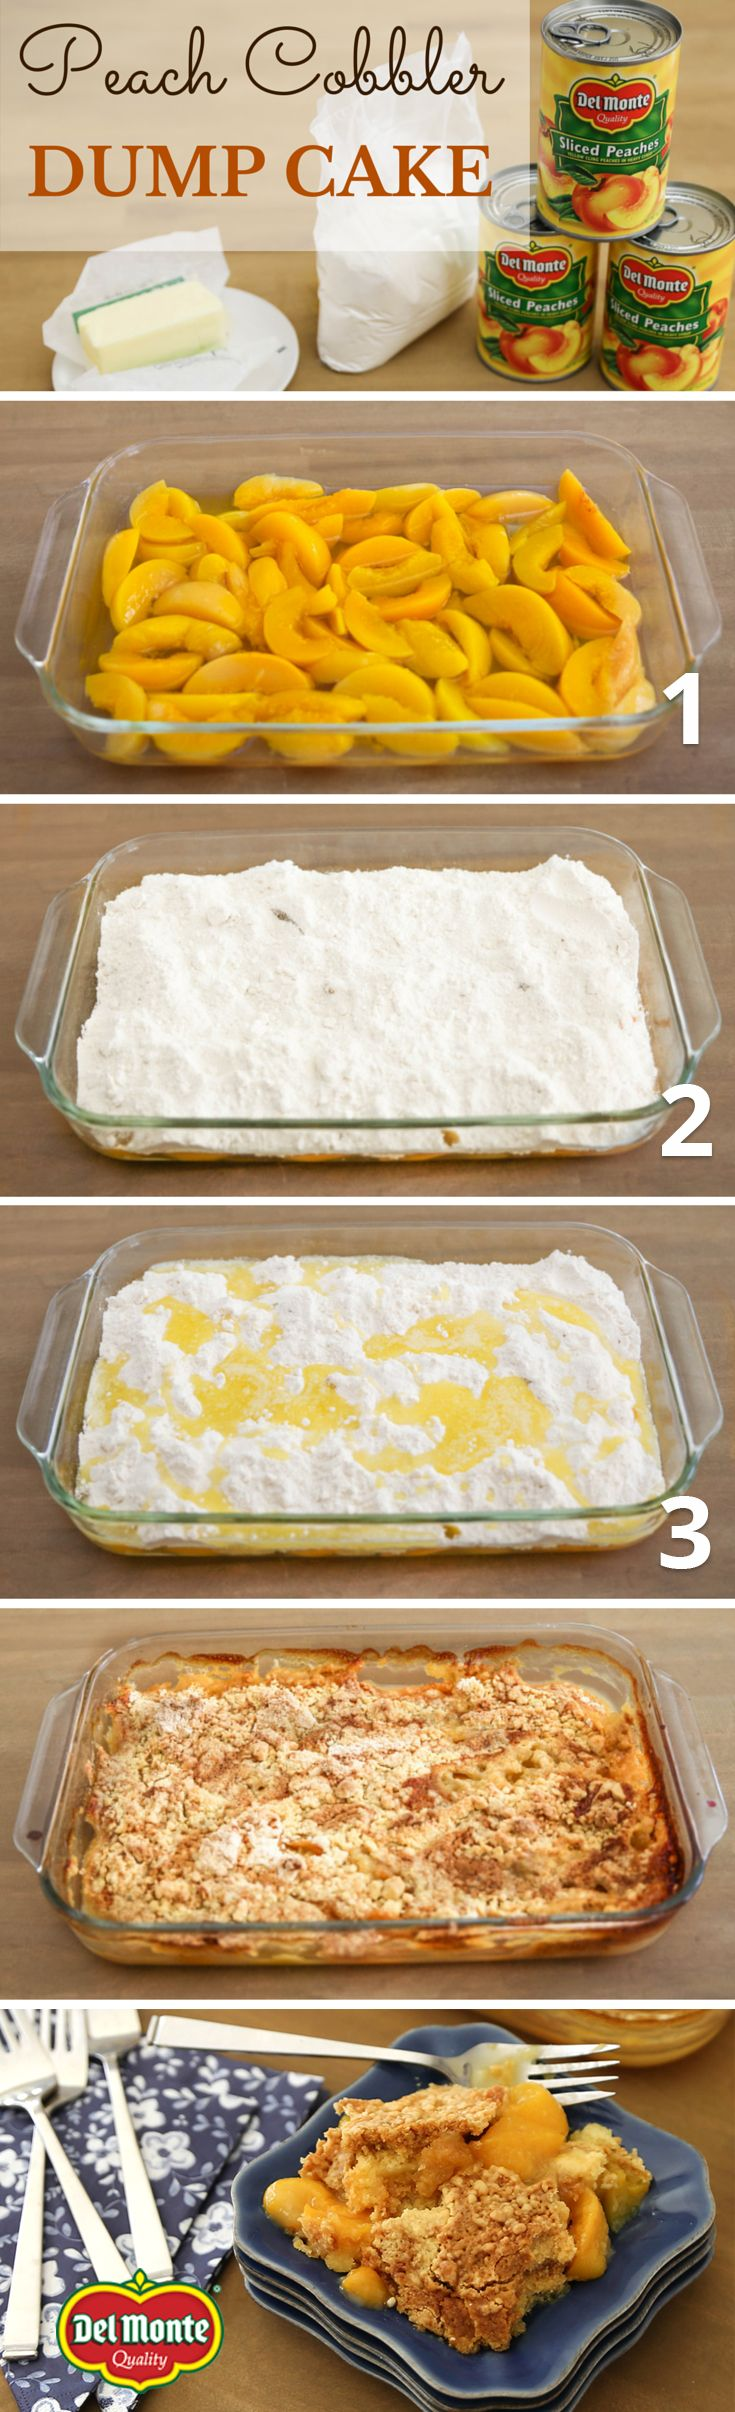 Peach Cobbler Dump Cake - The winner of the Del Monte Fan Favorite Dump Cake Poll! A super-simple sweet comfort food, made with 3 ingredients! No mixer, no eggs! Just layer fruit, dry cake mix and but (Fruit Bake Goods)